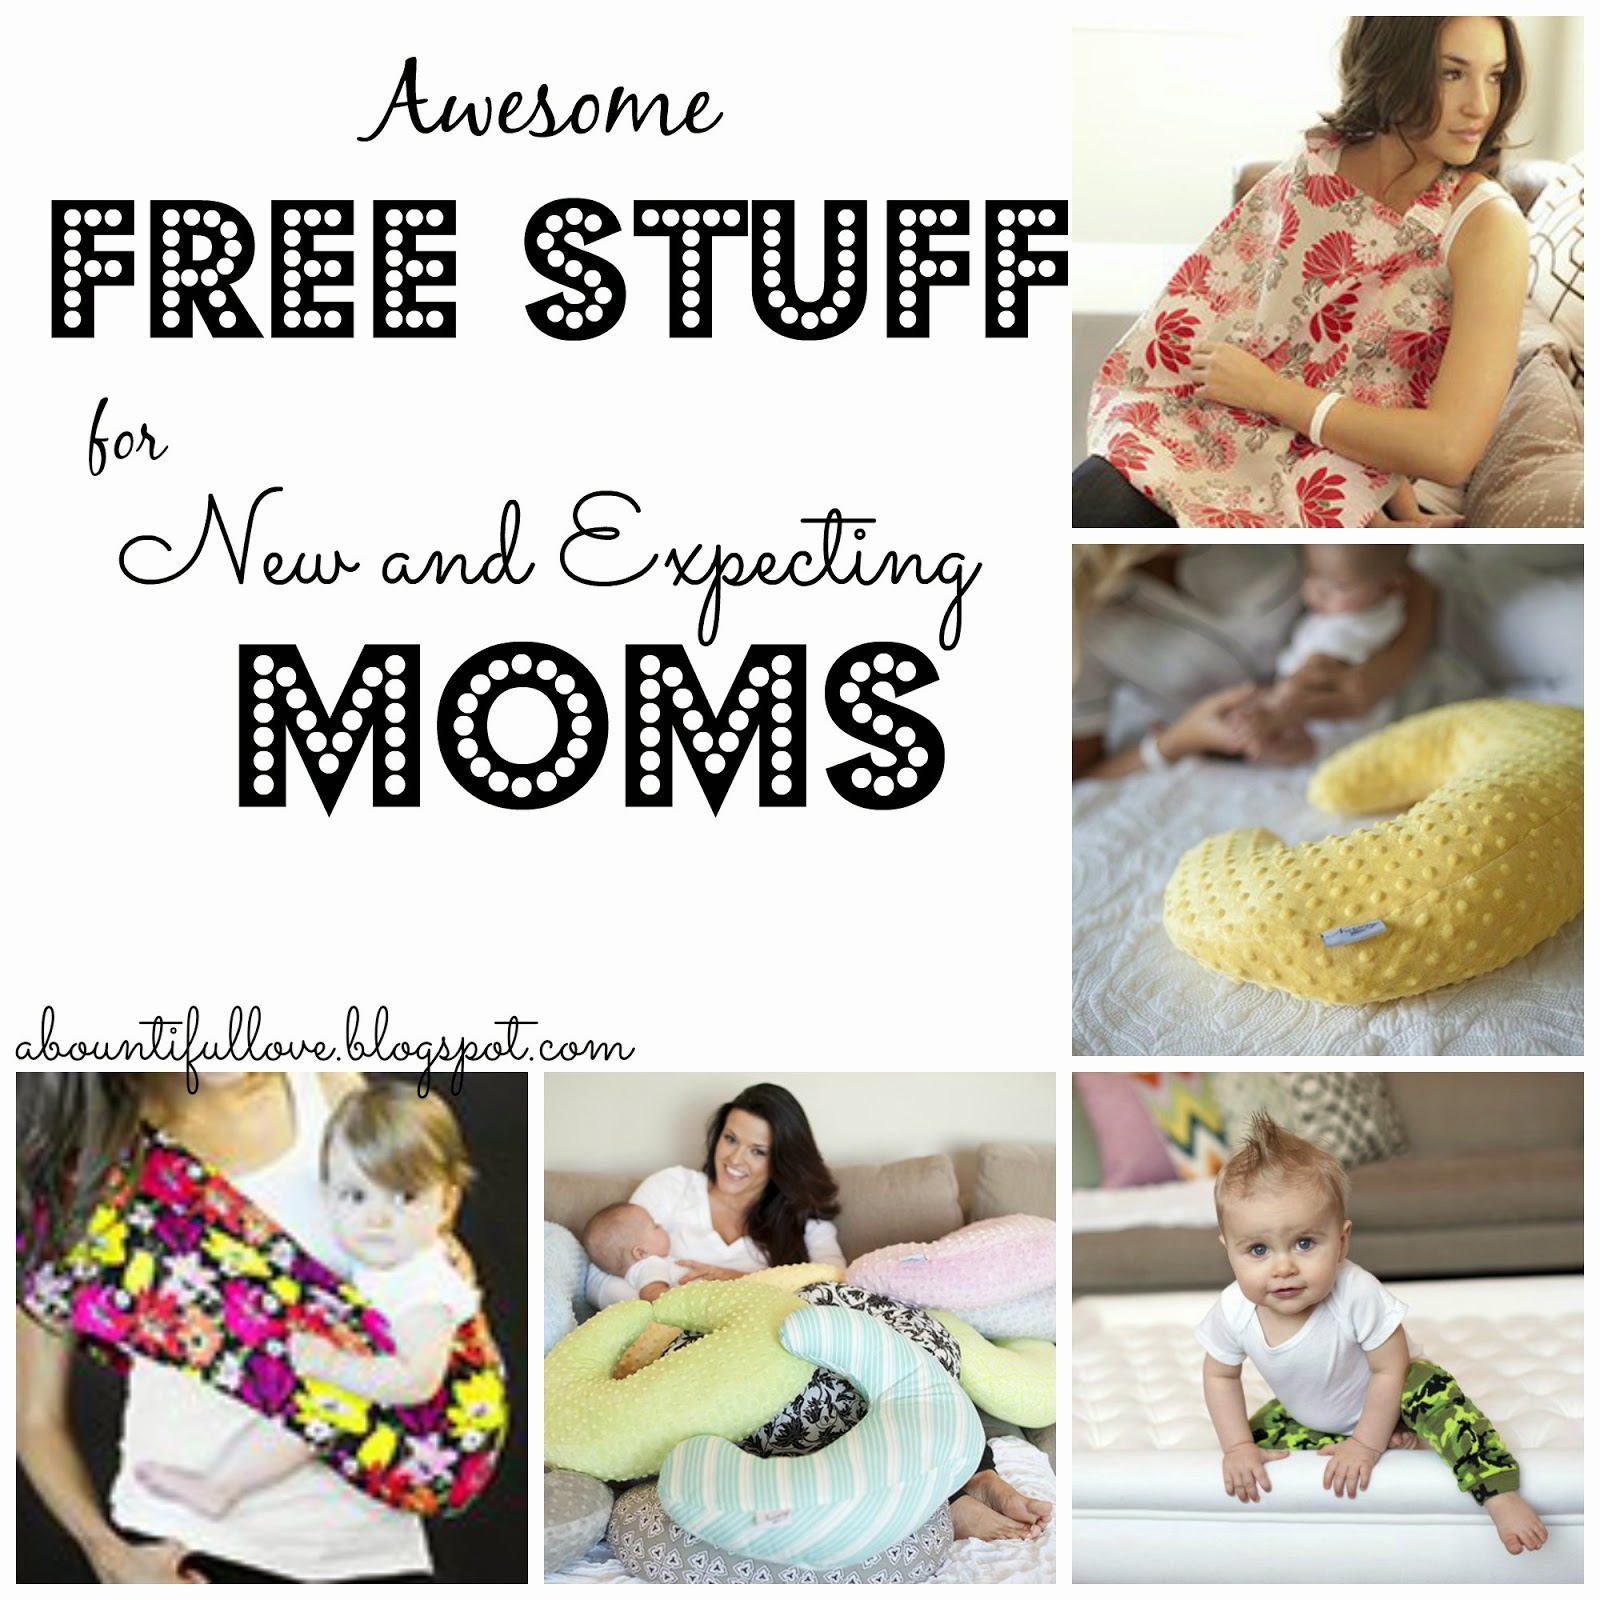 I've discovered which baby freebies are truly free and which ones you must actually pay for. You can get tons of free baby samples on the internet. I've discovered which baby freebies are truly free and which ones you must actually pay for.